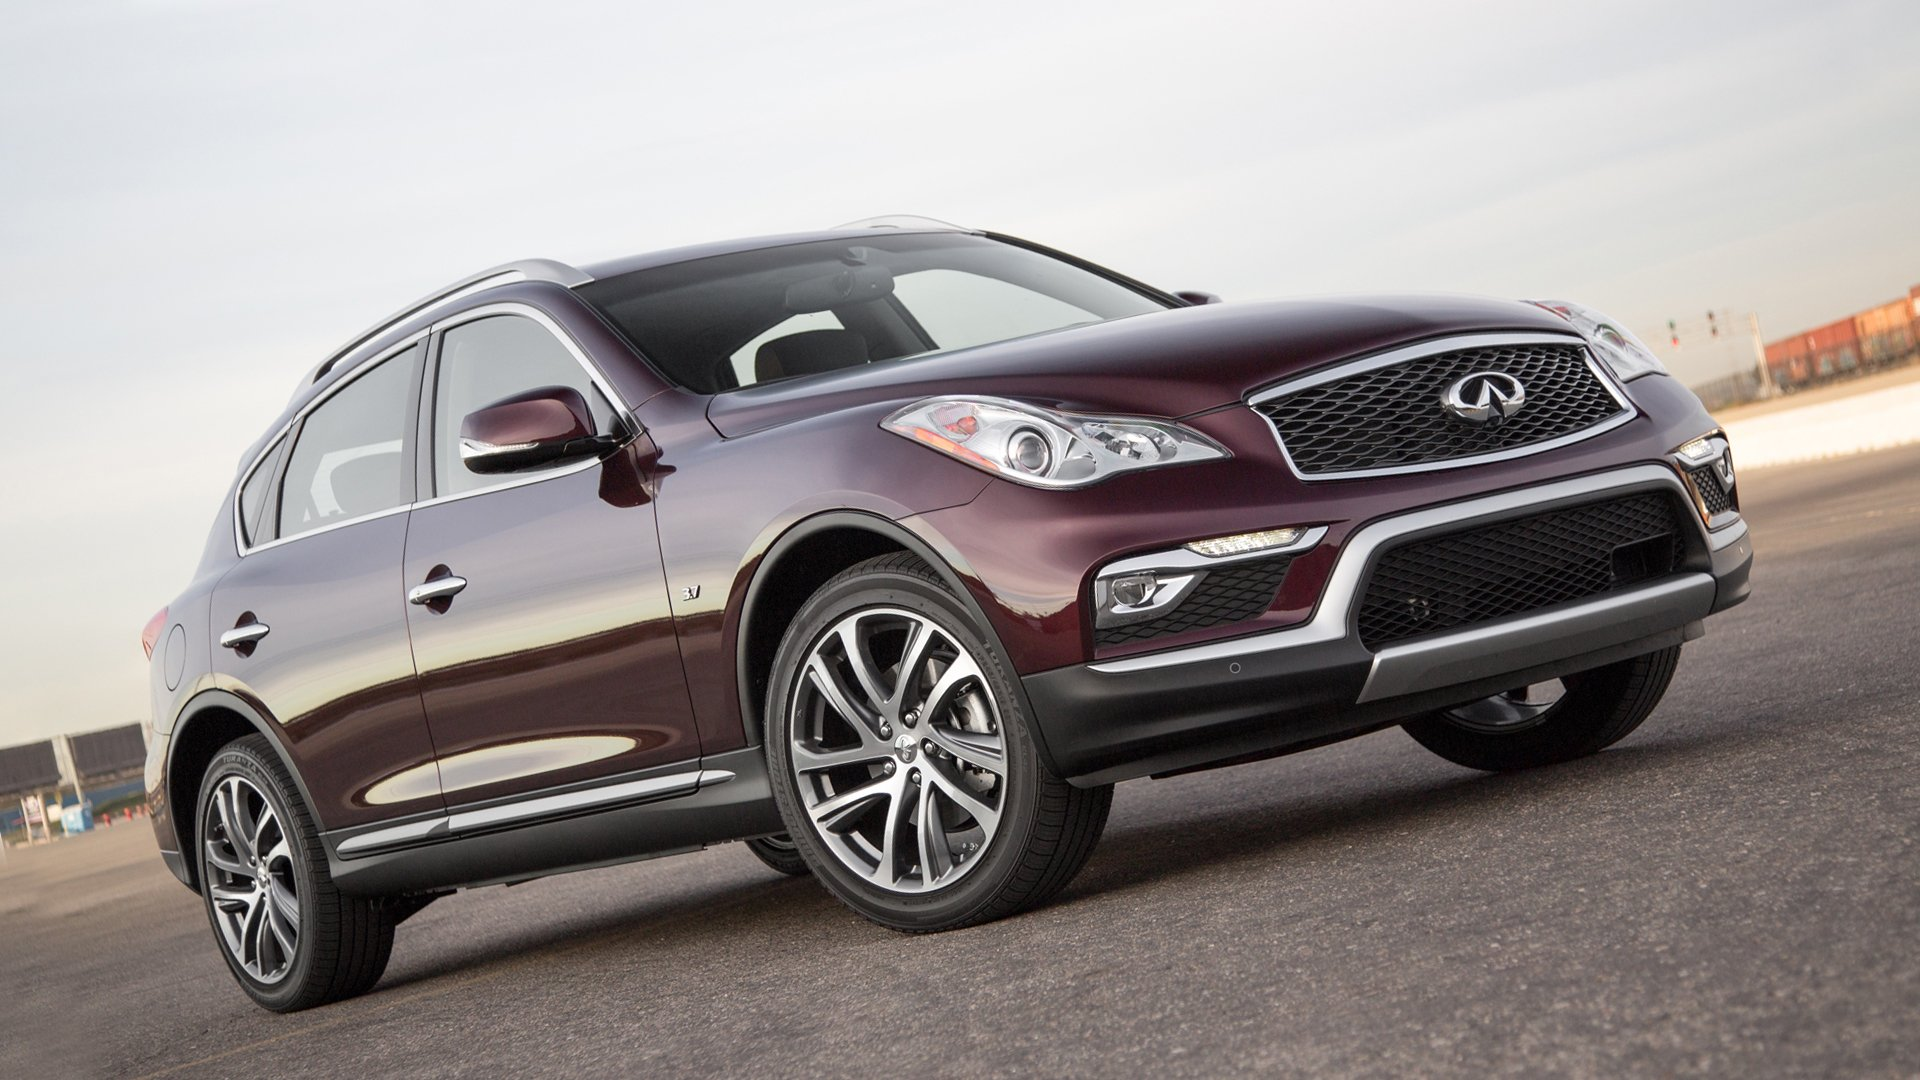 review coupe and infiniti convertible car specs release price infinity